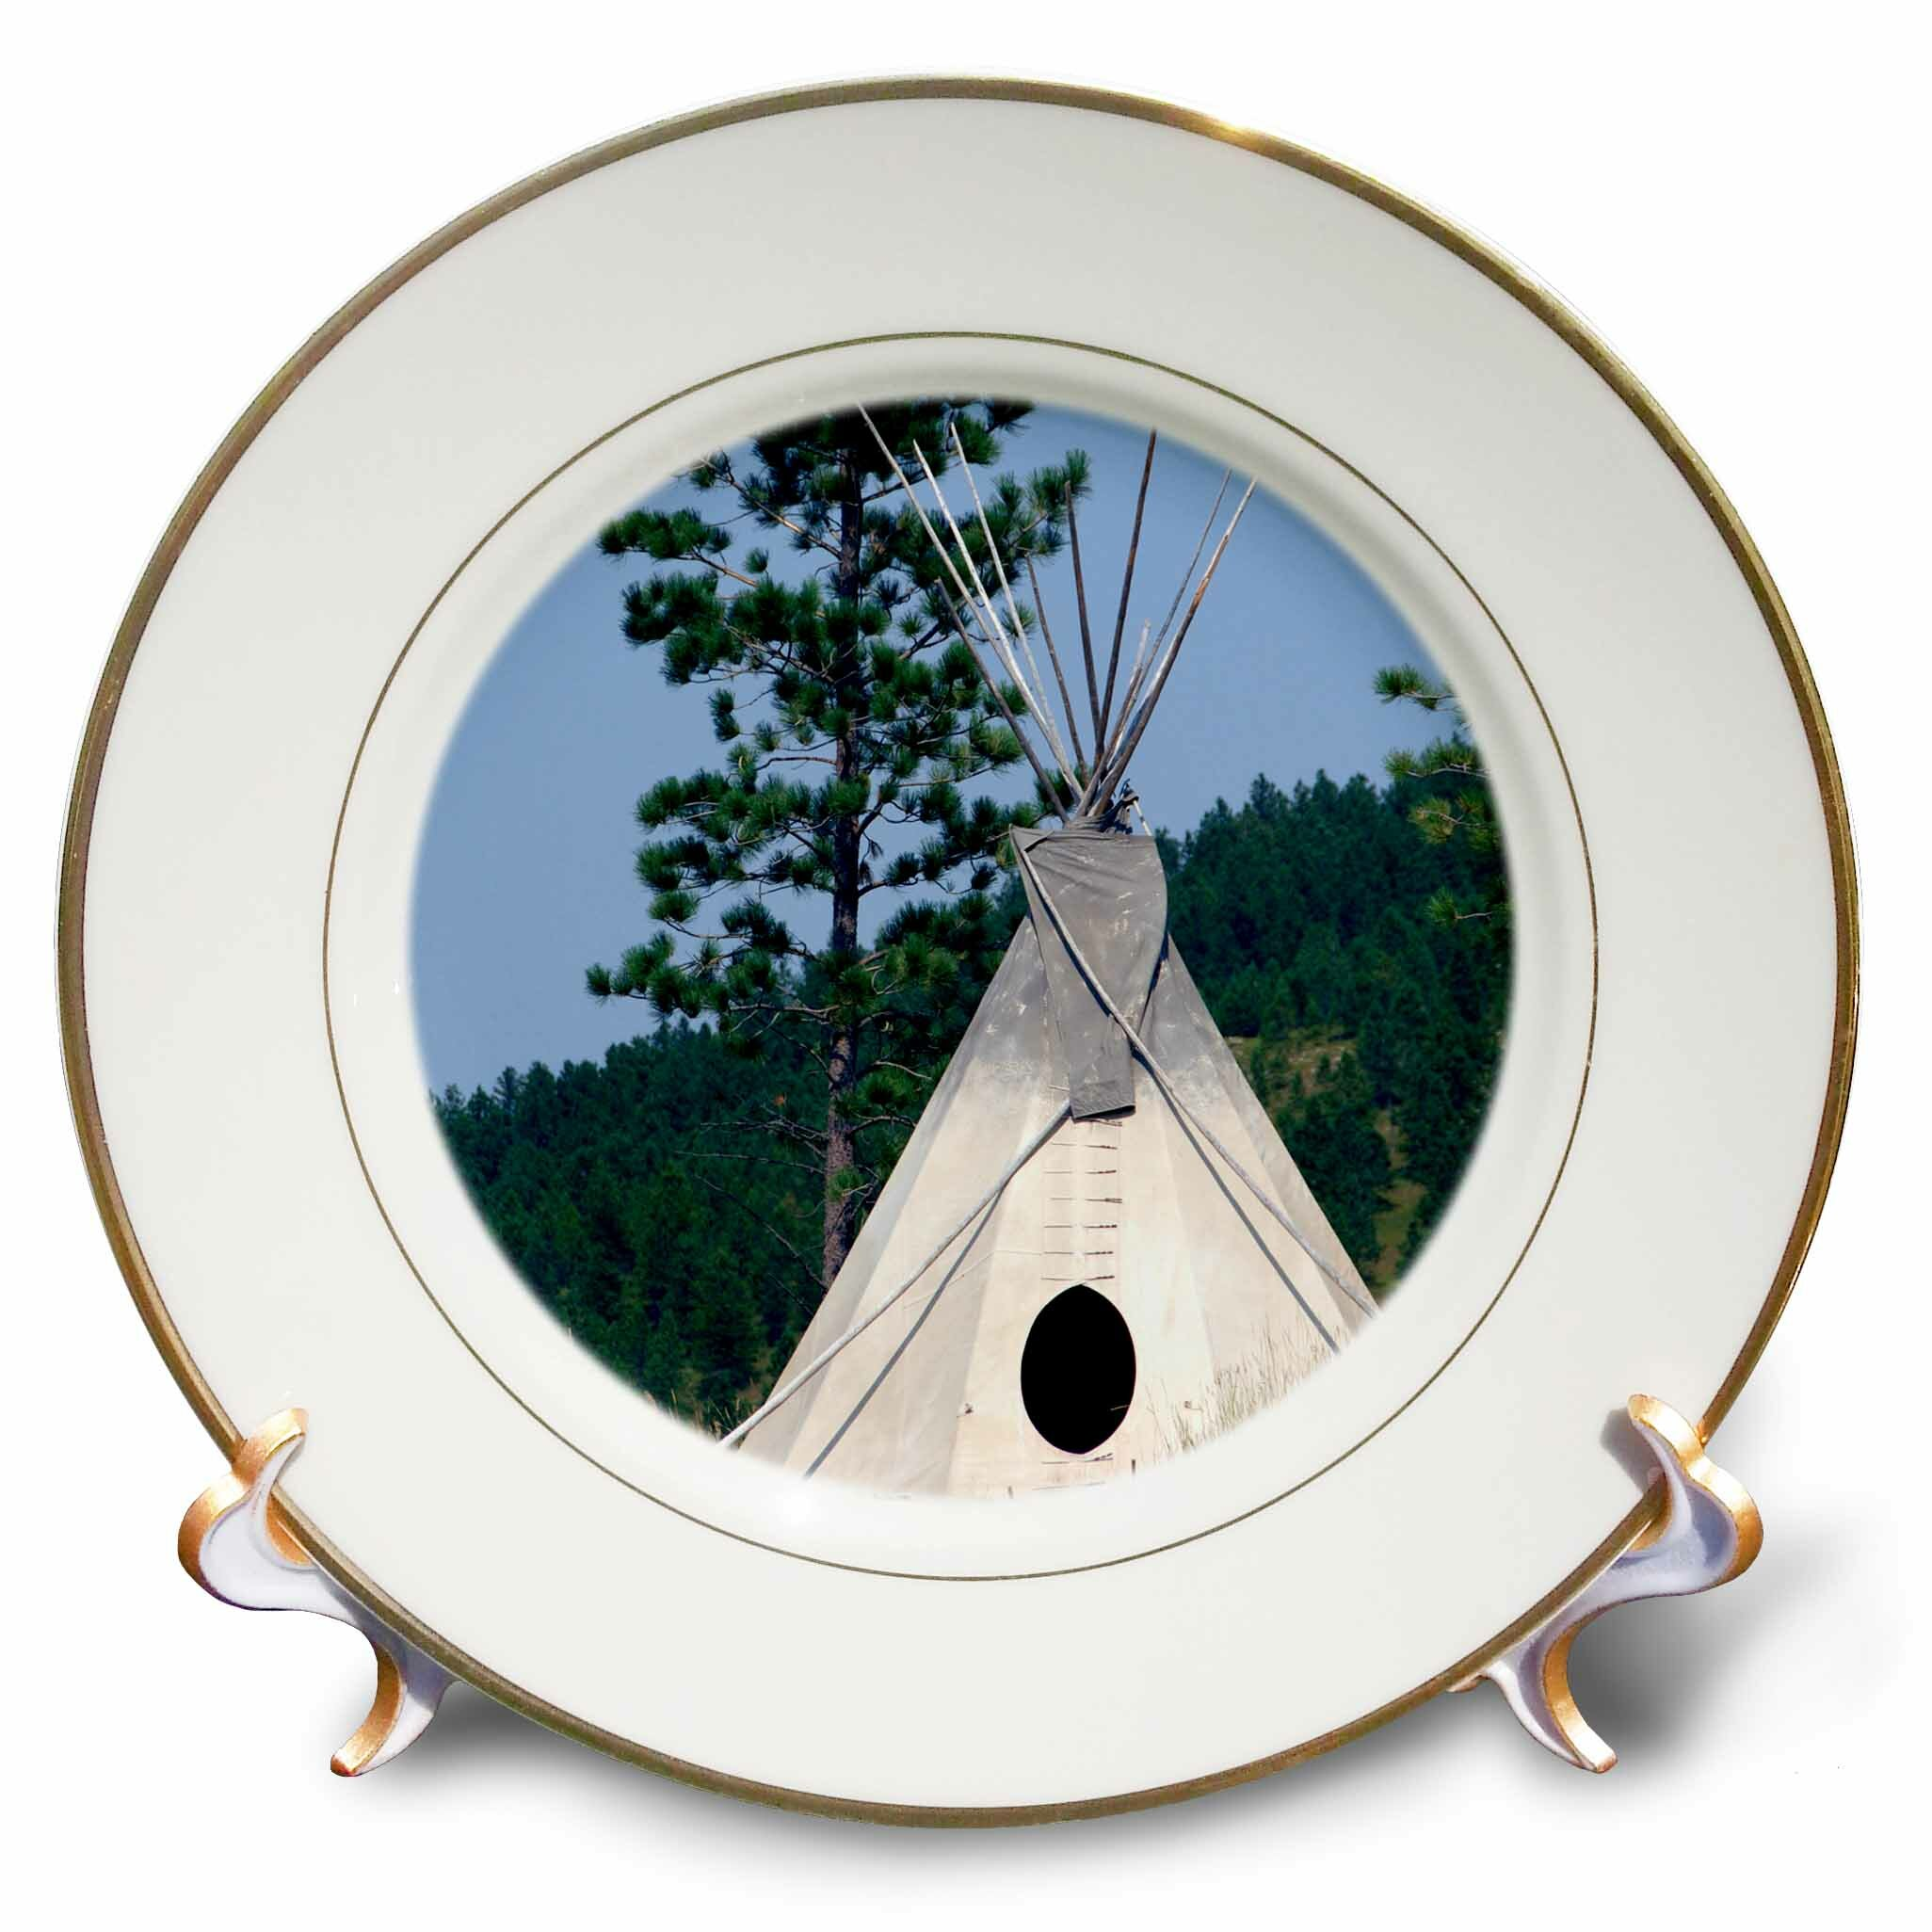 East Urban Home Sd Lakota Indian Teepee Native American Cindy Miller Hopkins Porcelain Decorative Plate Wayfair